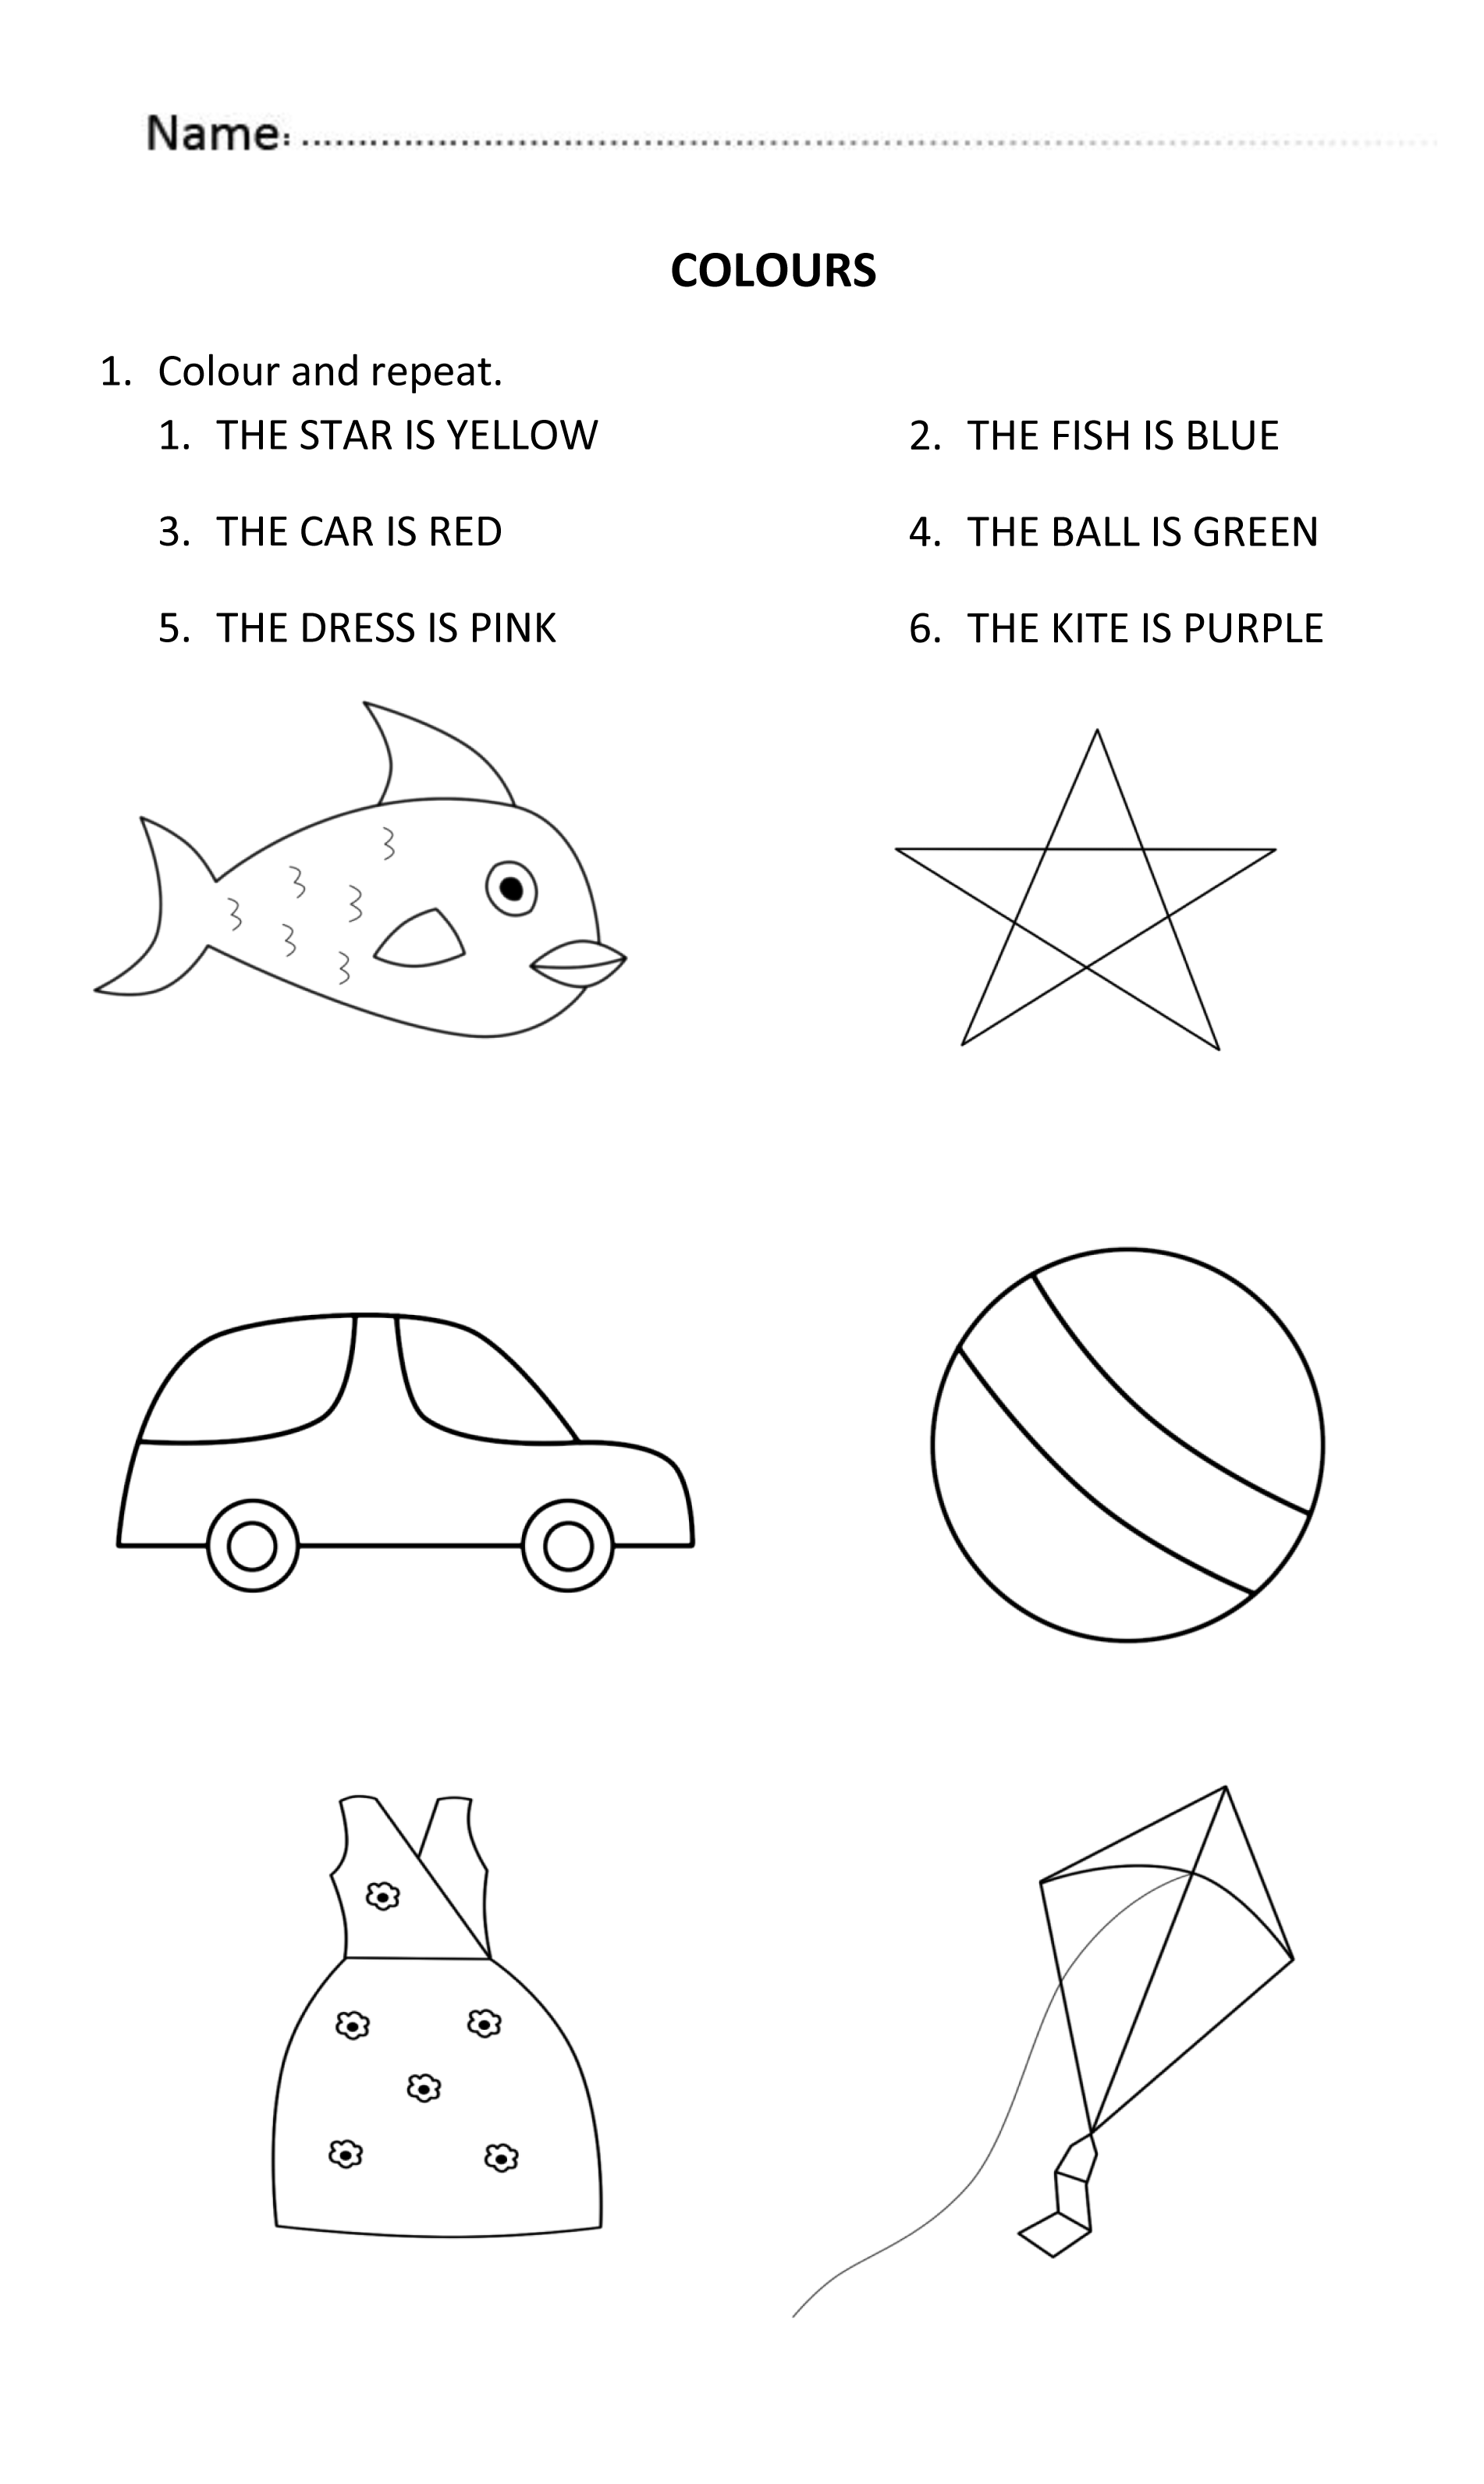 Colours worksheet for 5 and 6 years old. #LearningColours ...